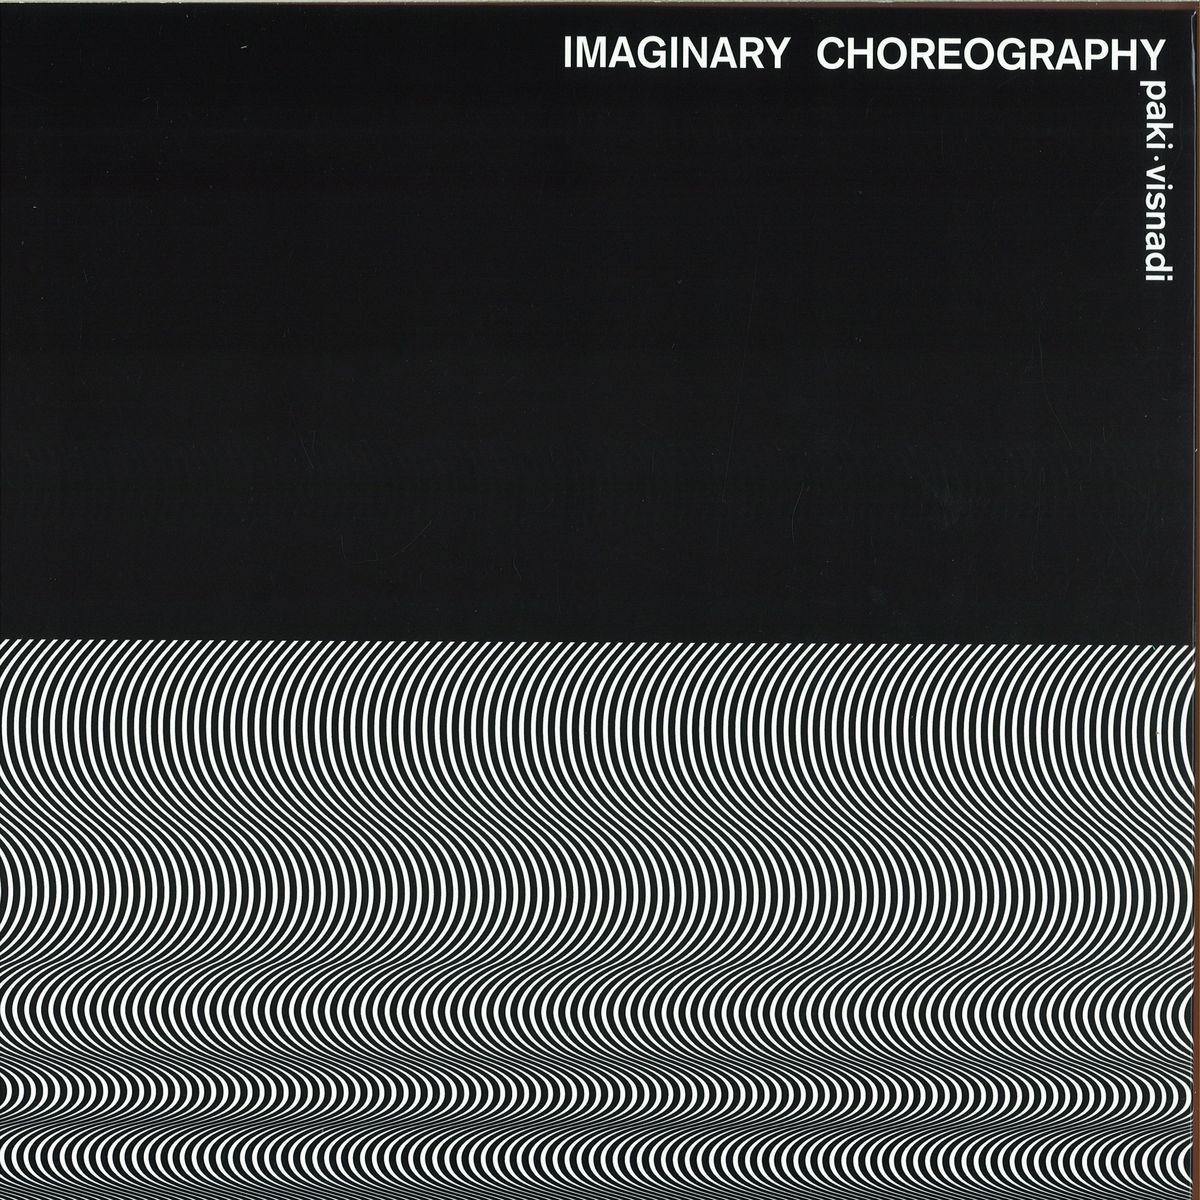 Paki & Visnadi - Imaginary Choreography